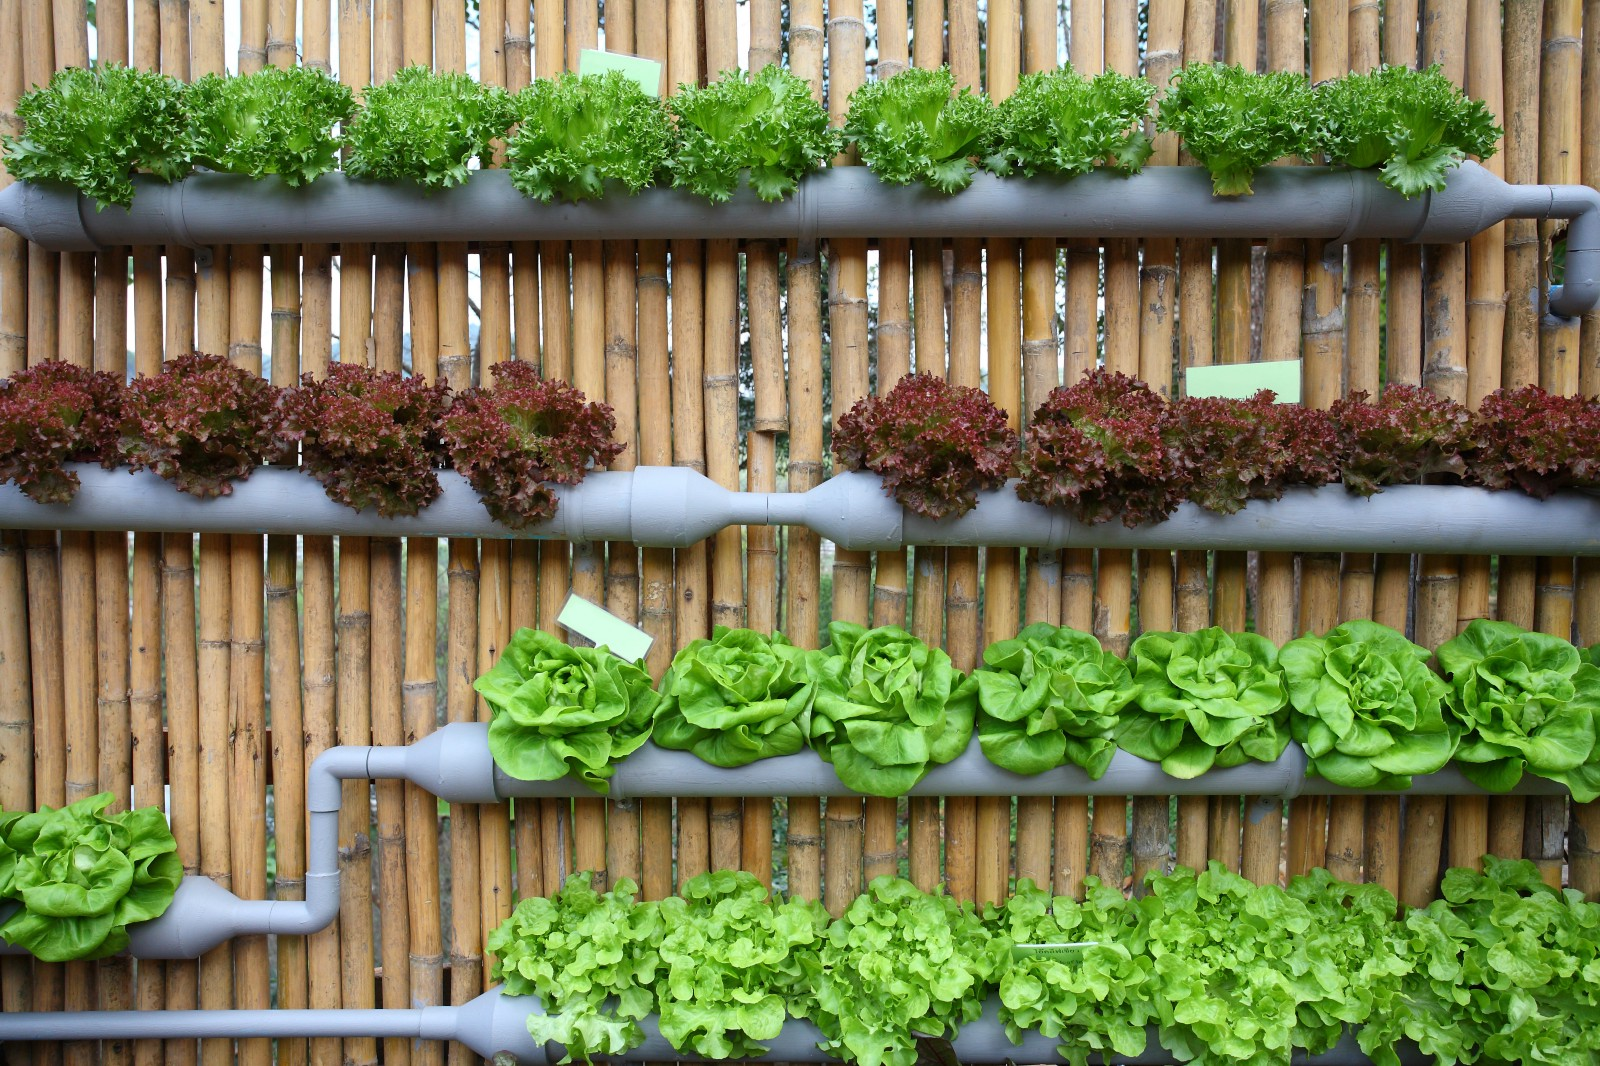 Designing a Renewable Food System